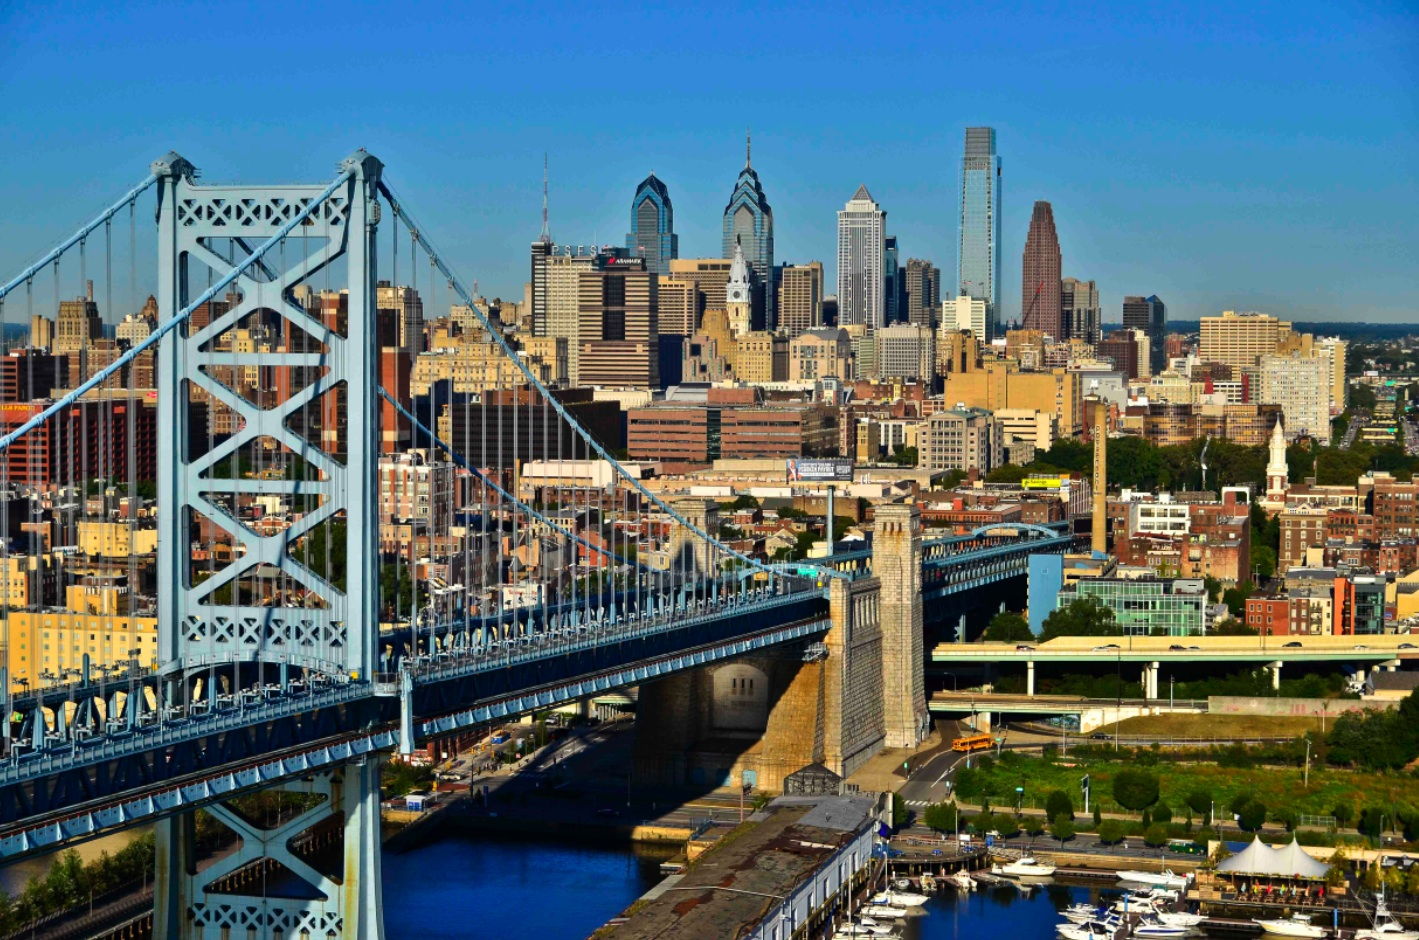 Built in 1926, the Benjamin Franklin Bridge, which traverses the Delaware River, connects Philadelphia, the nation's fifth largest city, and New Jersey. More than 100,000 cars, dozens of pedestrians and high-speed rail lines cross the bridge daily.  Credit: Photo by B. Krist for Visit Philadelphia™